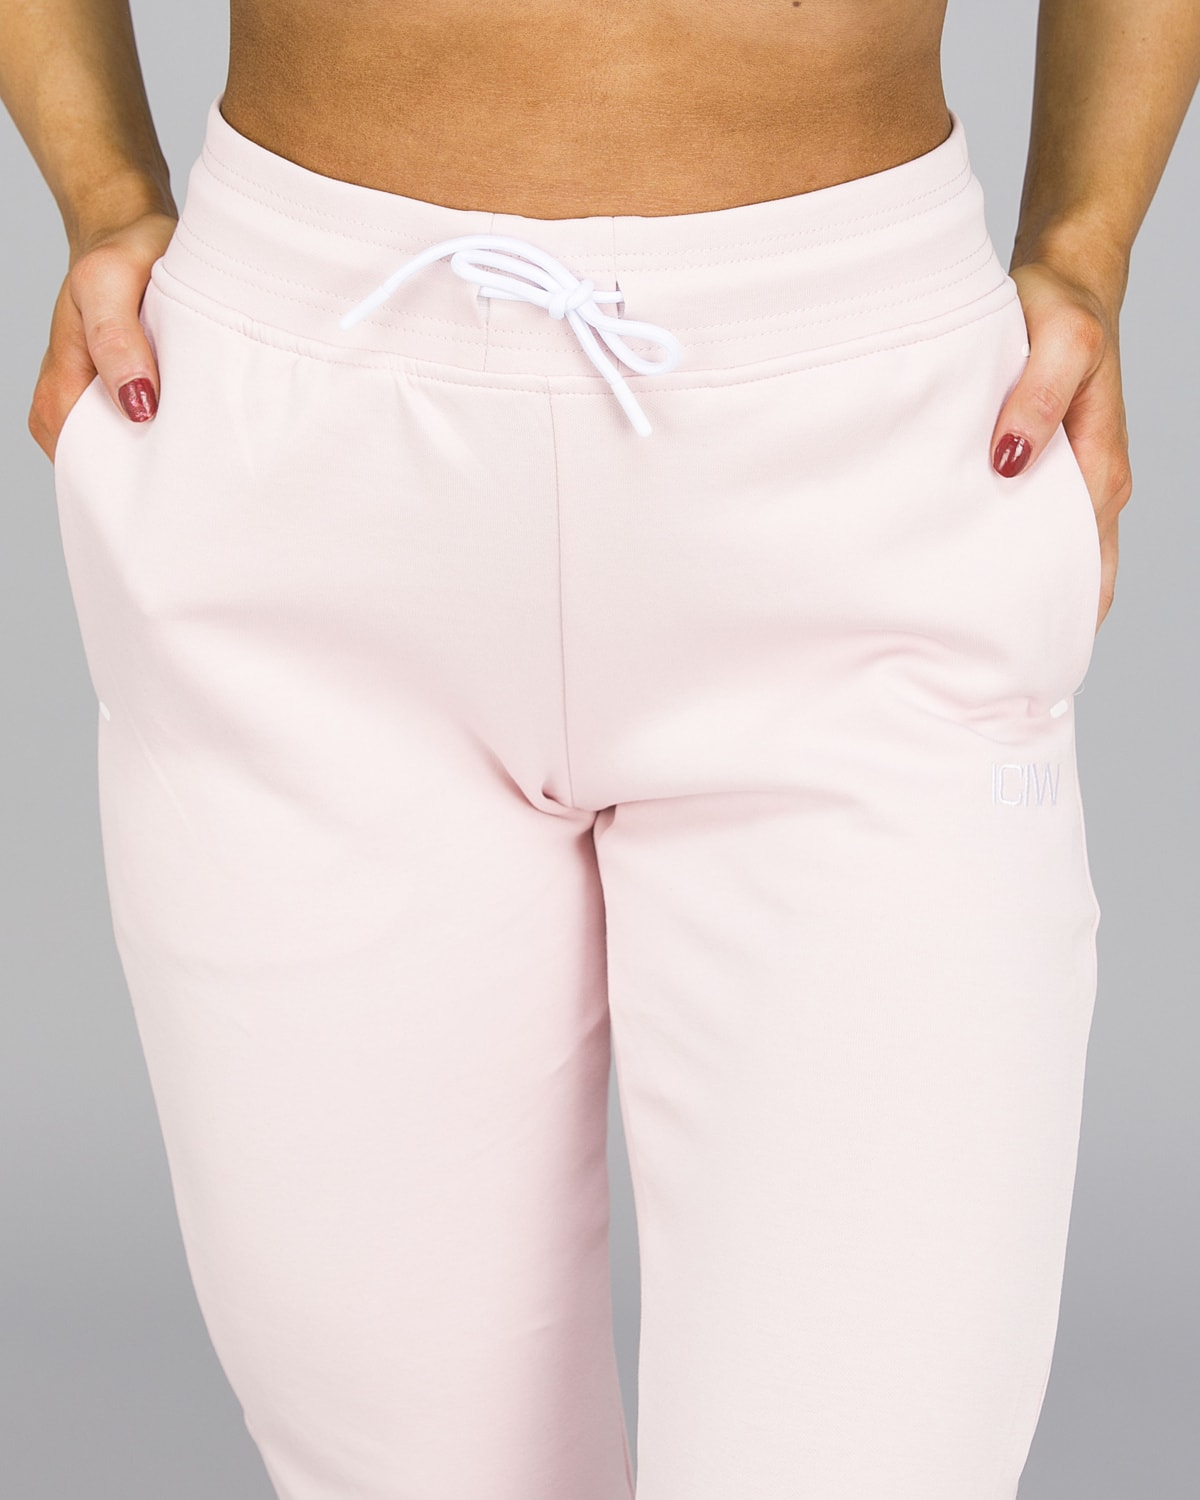 ICANIWILL – Sweat Pants – Dusty Pink h